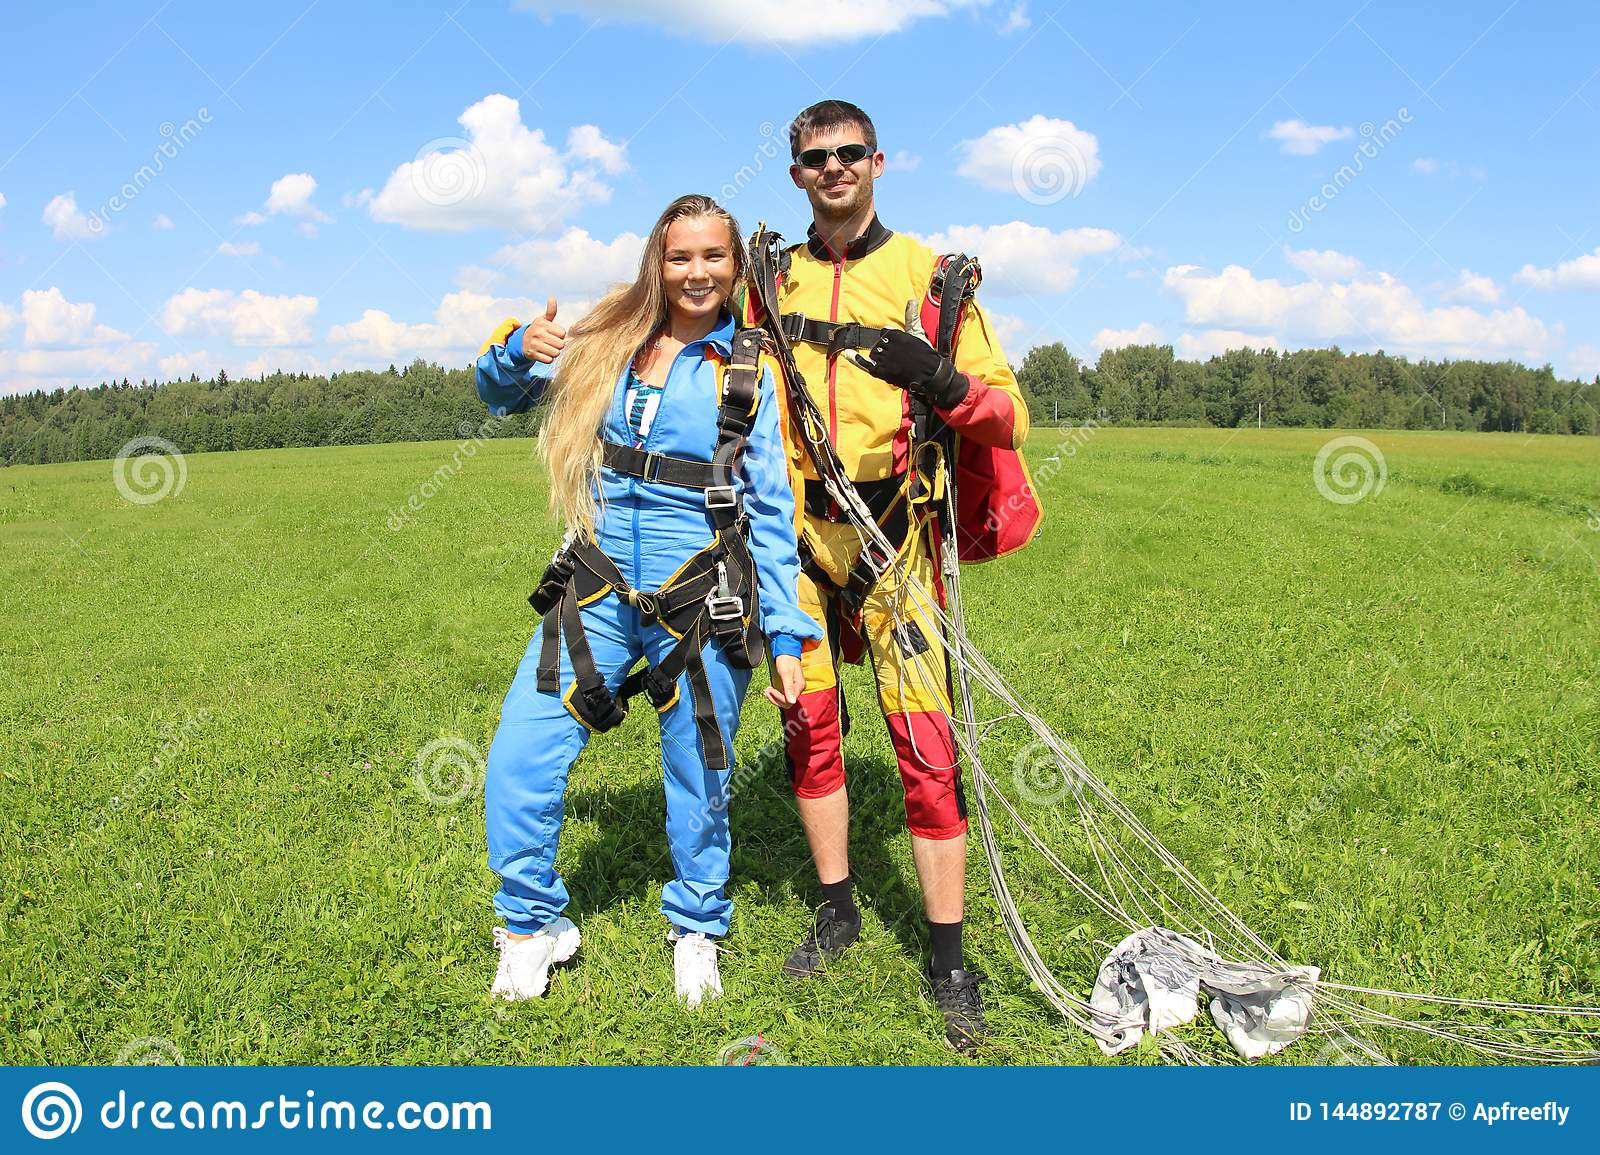 Tandem Skydiving  Instructor With Girl  Stock Image - Image